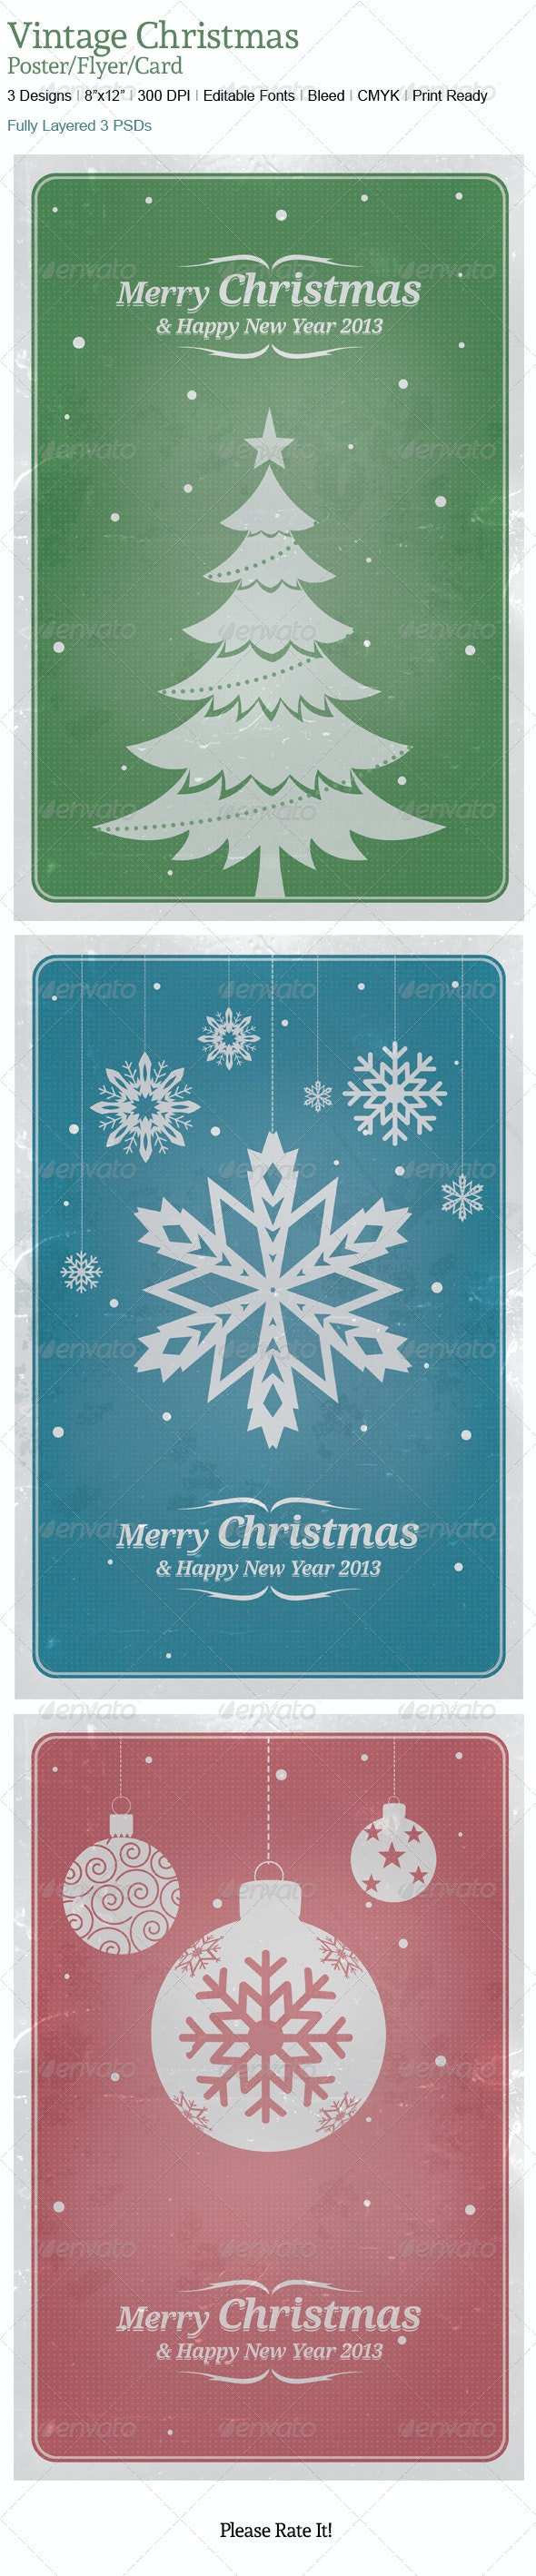 Vintage Chrstmas Poster/Cards Backgrounds - Holiday Greeting Cards